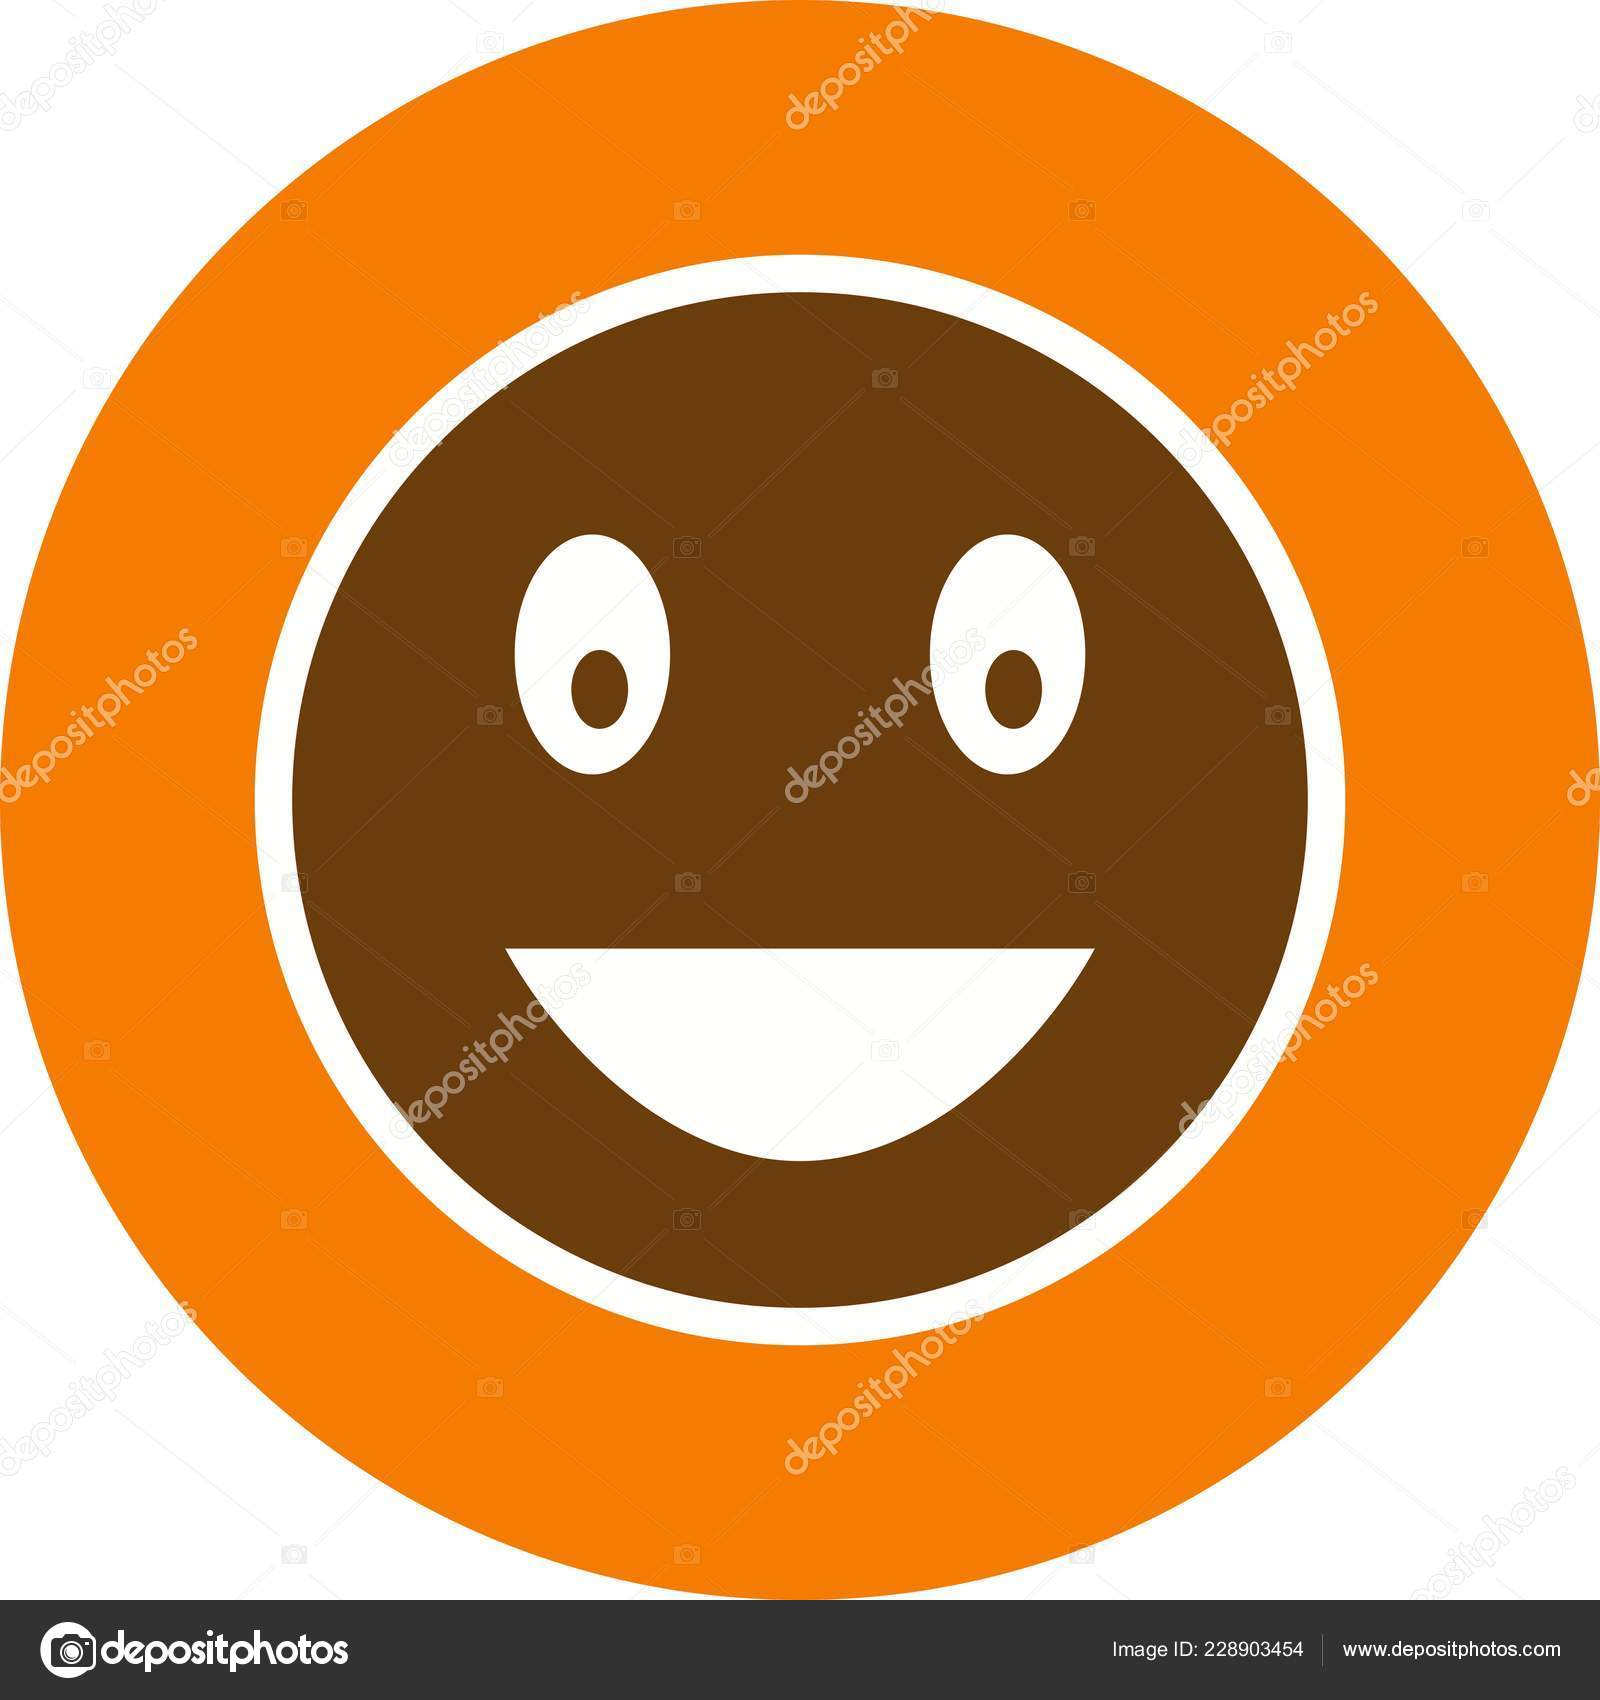 Laughing Emoji Vector Icon Sign Icon Vector Illustration